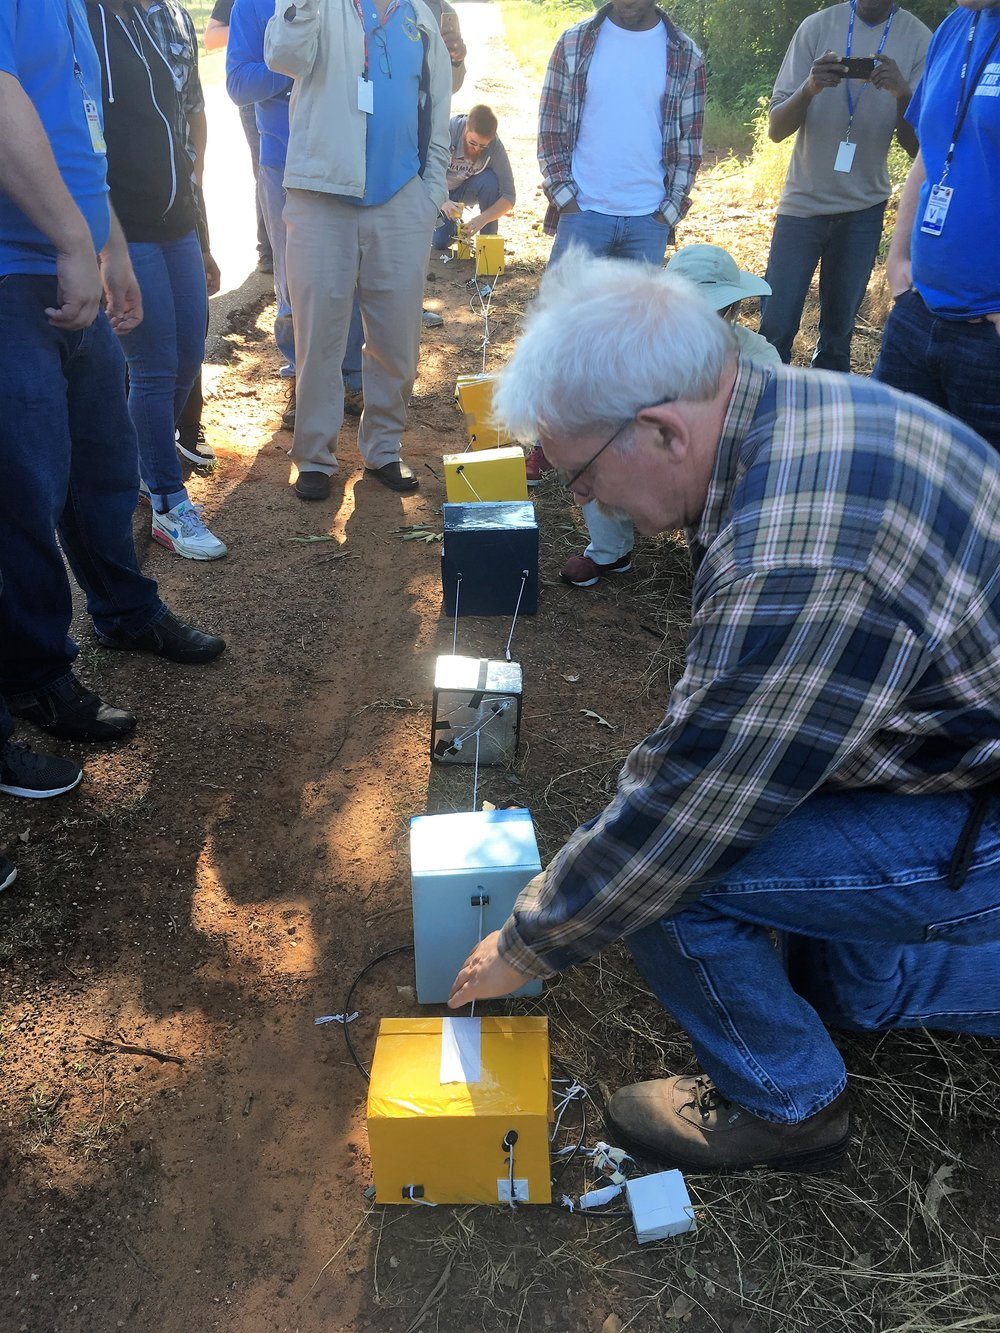 Photo of LaSPACE Director Gregory Guzik laying out a balloon string after the recovery of a test balloon, to return payloads [boxes containing equipment or scientific experiments] to LaACES student teams during the Palestine, TX ballooning competition. Photo Credit: C. Fava, LaSPACE